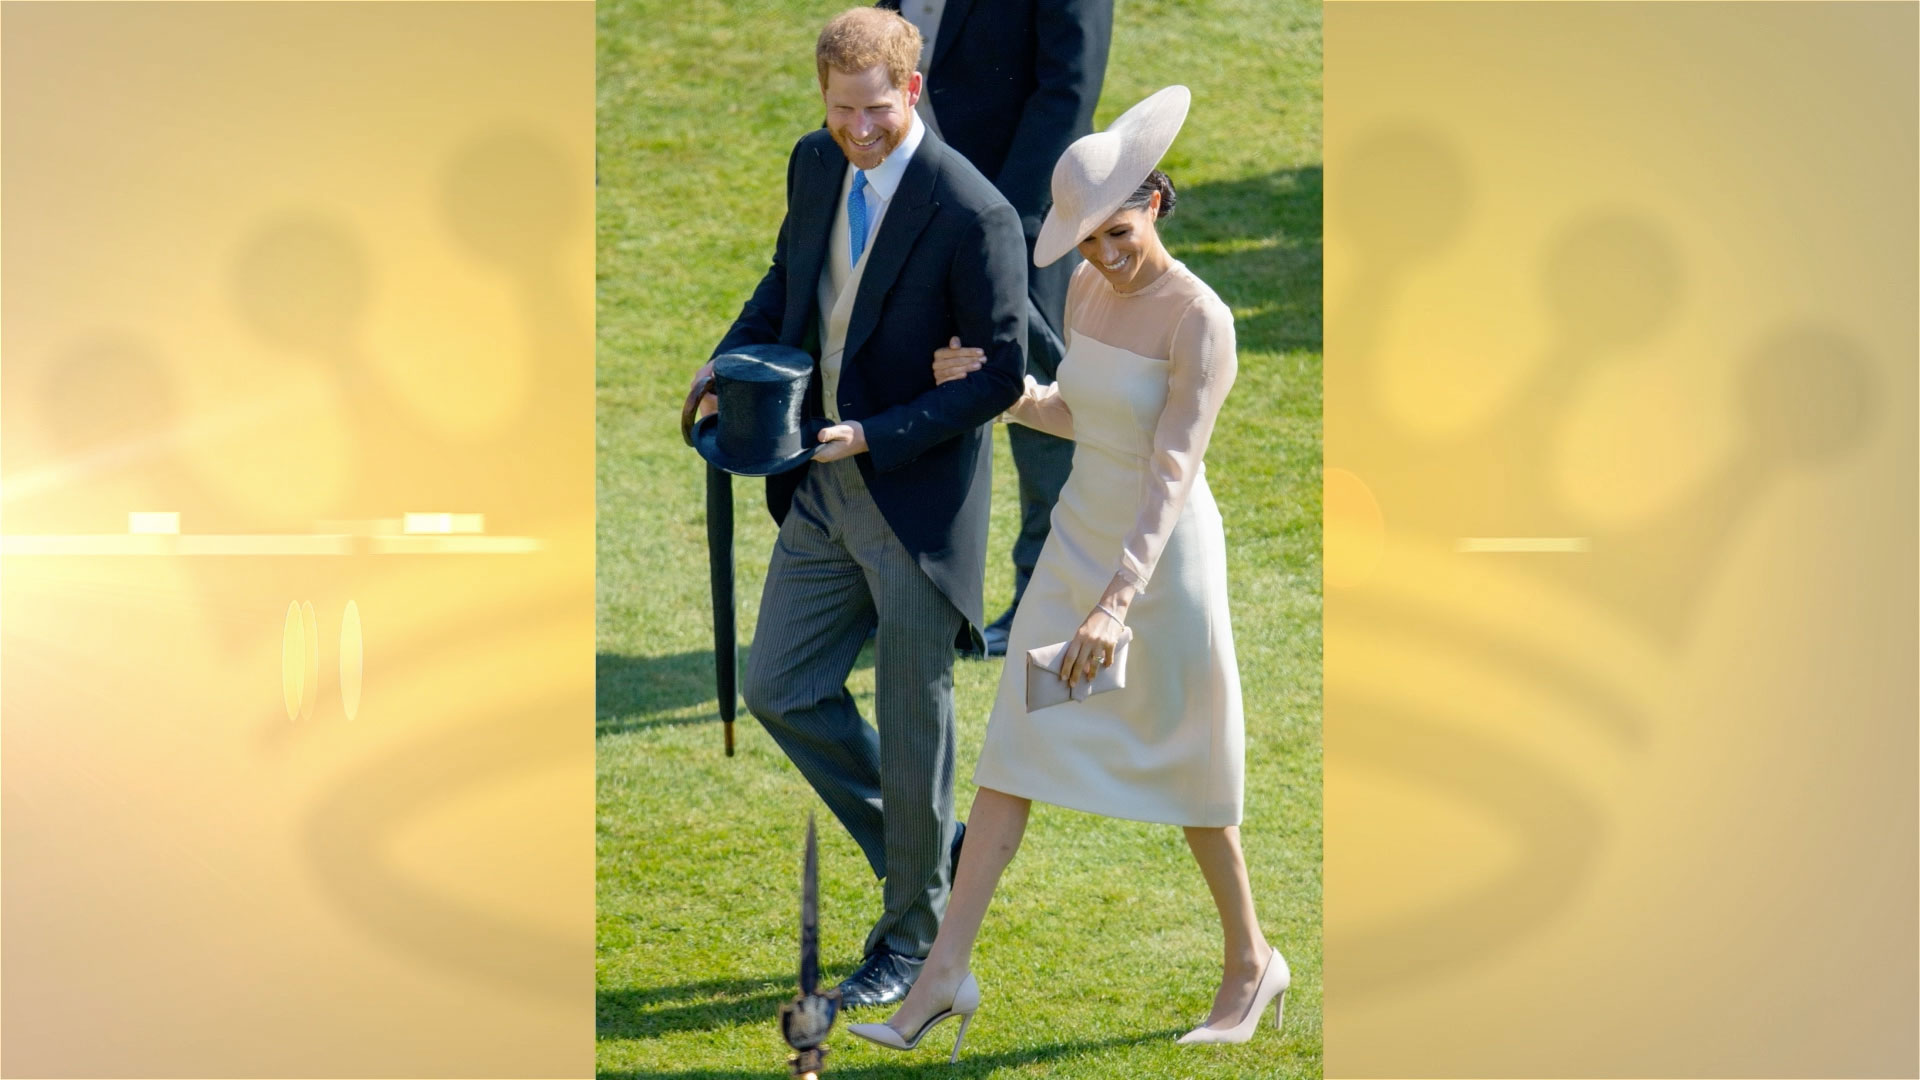 Meghan Markle Shows Her Baby Bump in a Slinky Dress... And Breaks Yet Another Royal Style Rule